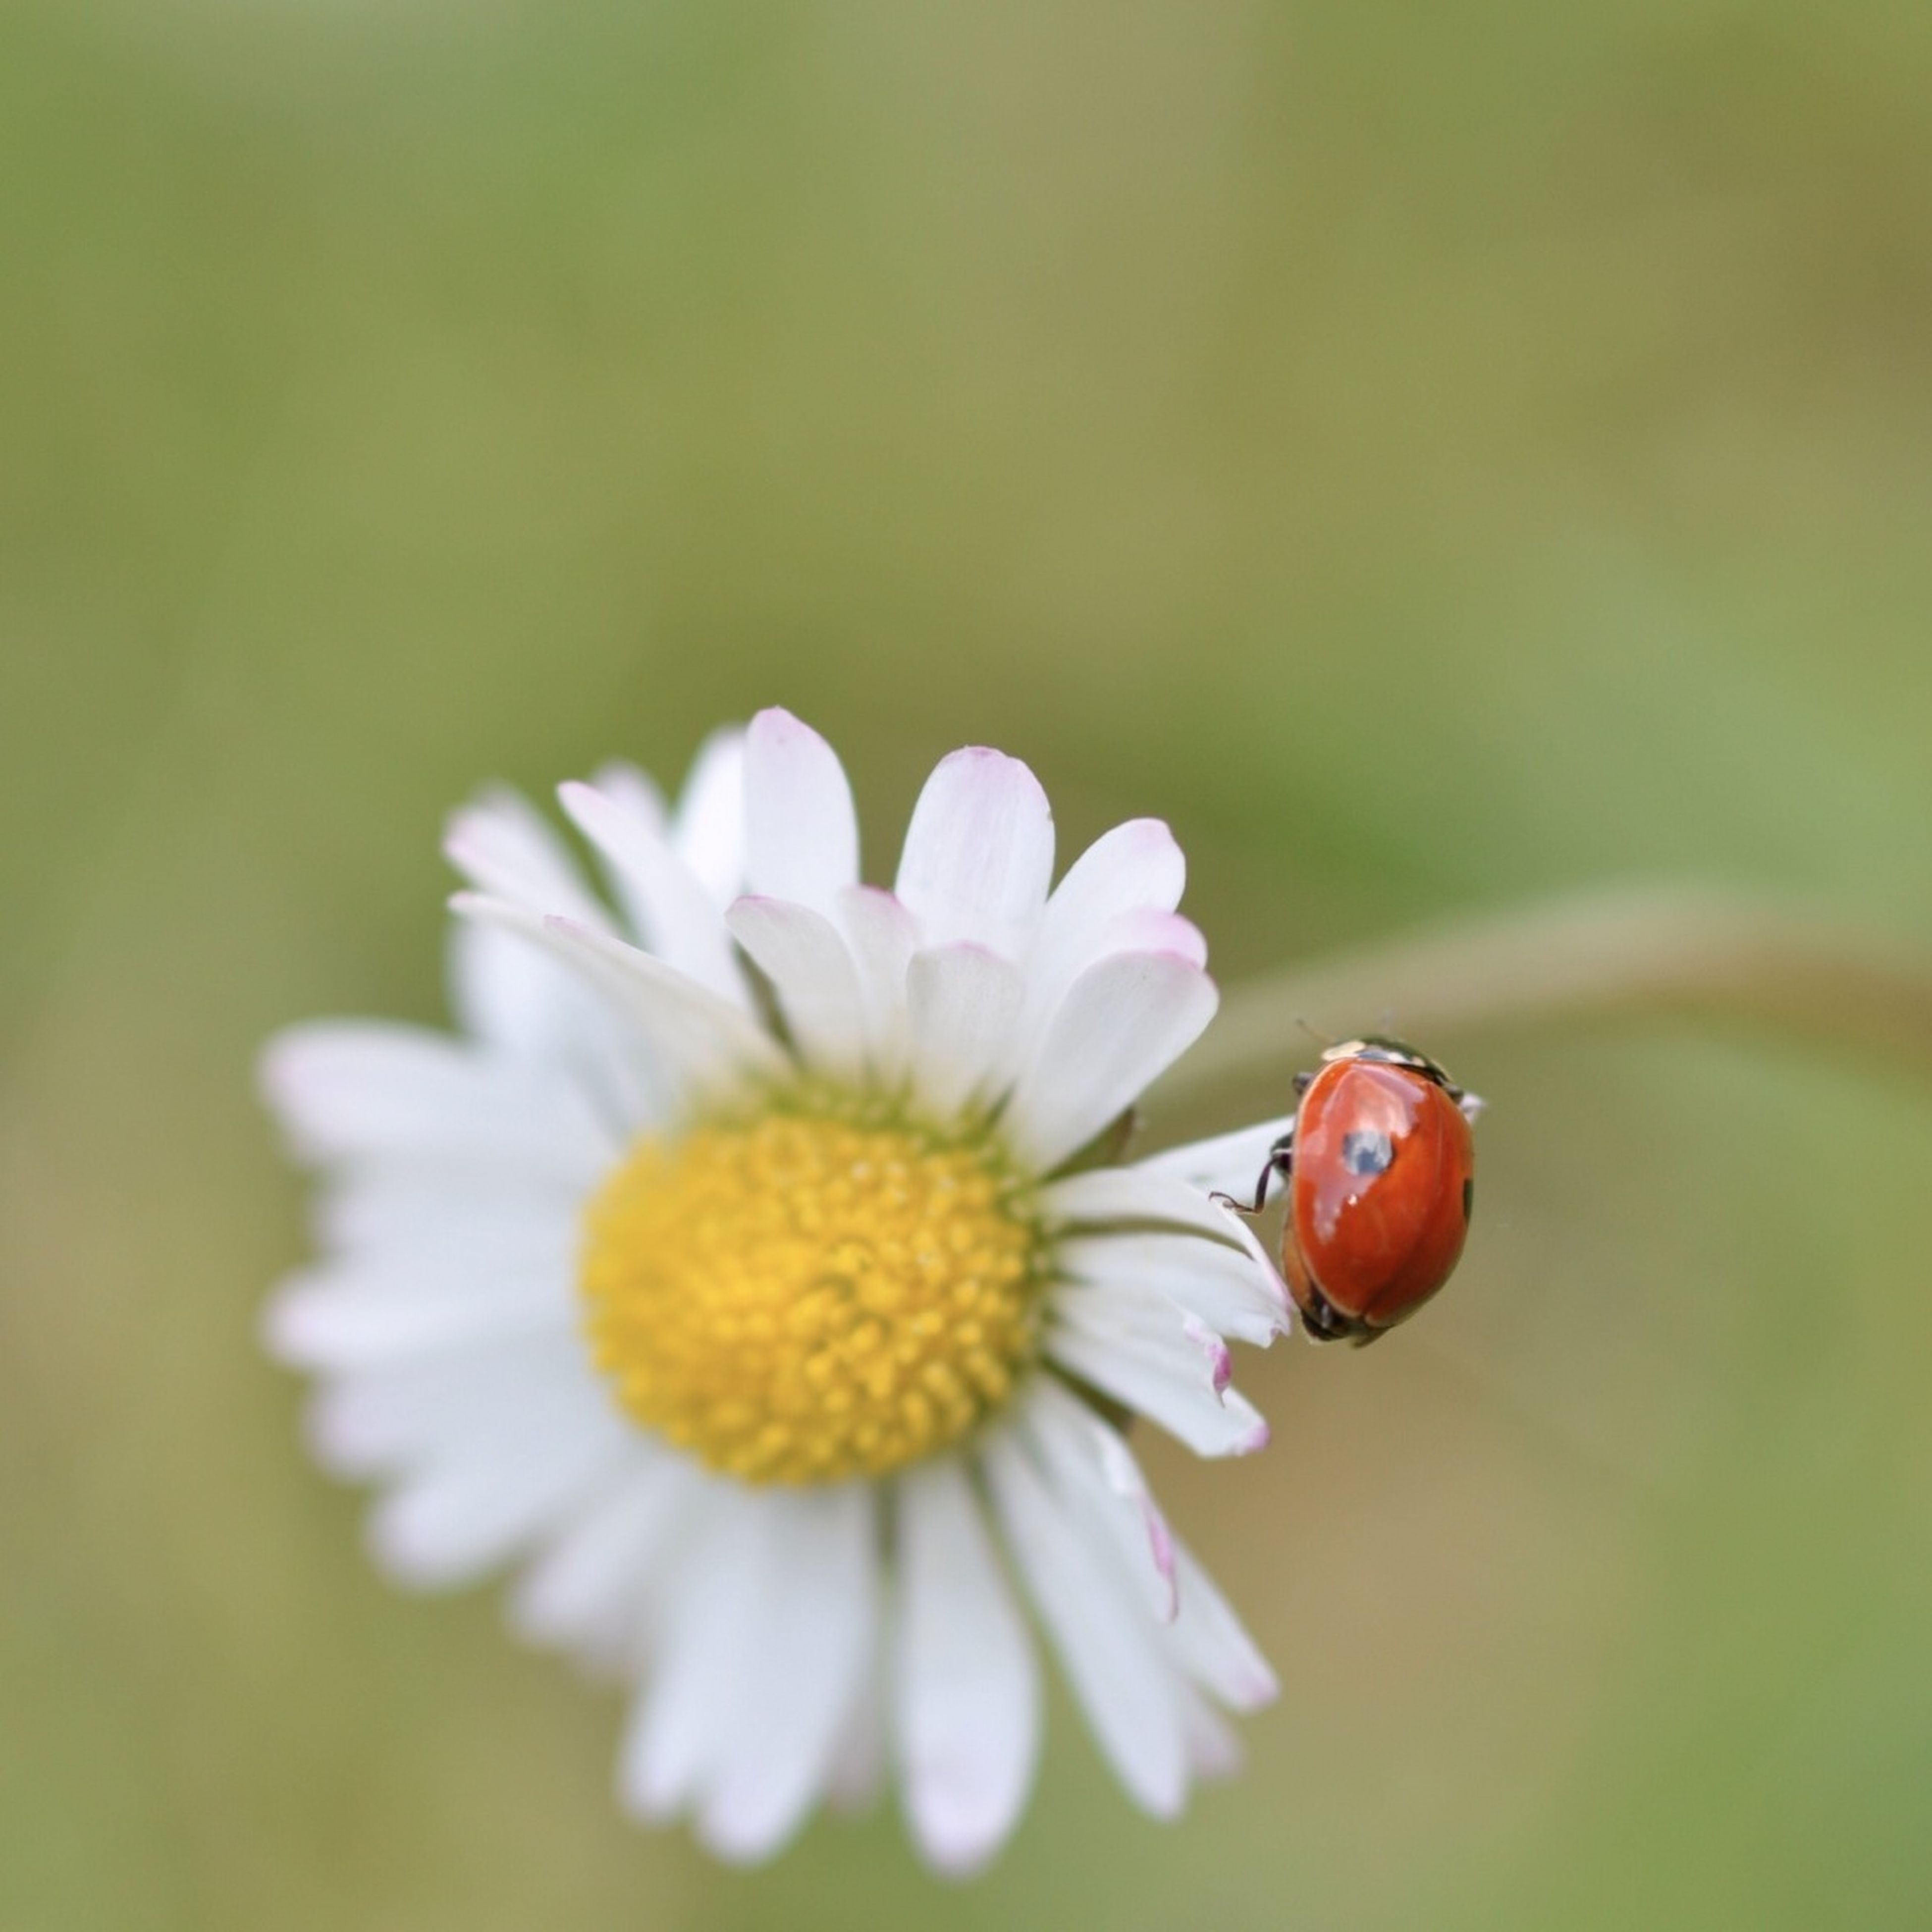 flower, petal, insect, freshness, flower head, fragility, close-up, animal themes, pollen, one animal, focus on foreground, beauty in nature, animals in the wild, wildlife, nature, growth, single flower, white color, selective focus, blooming